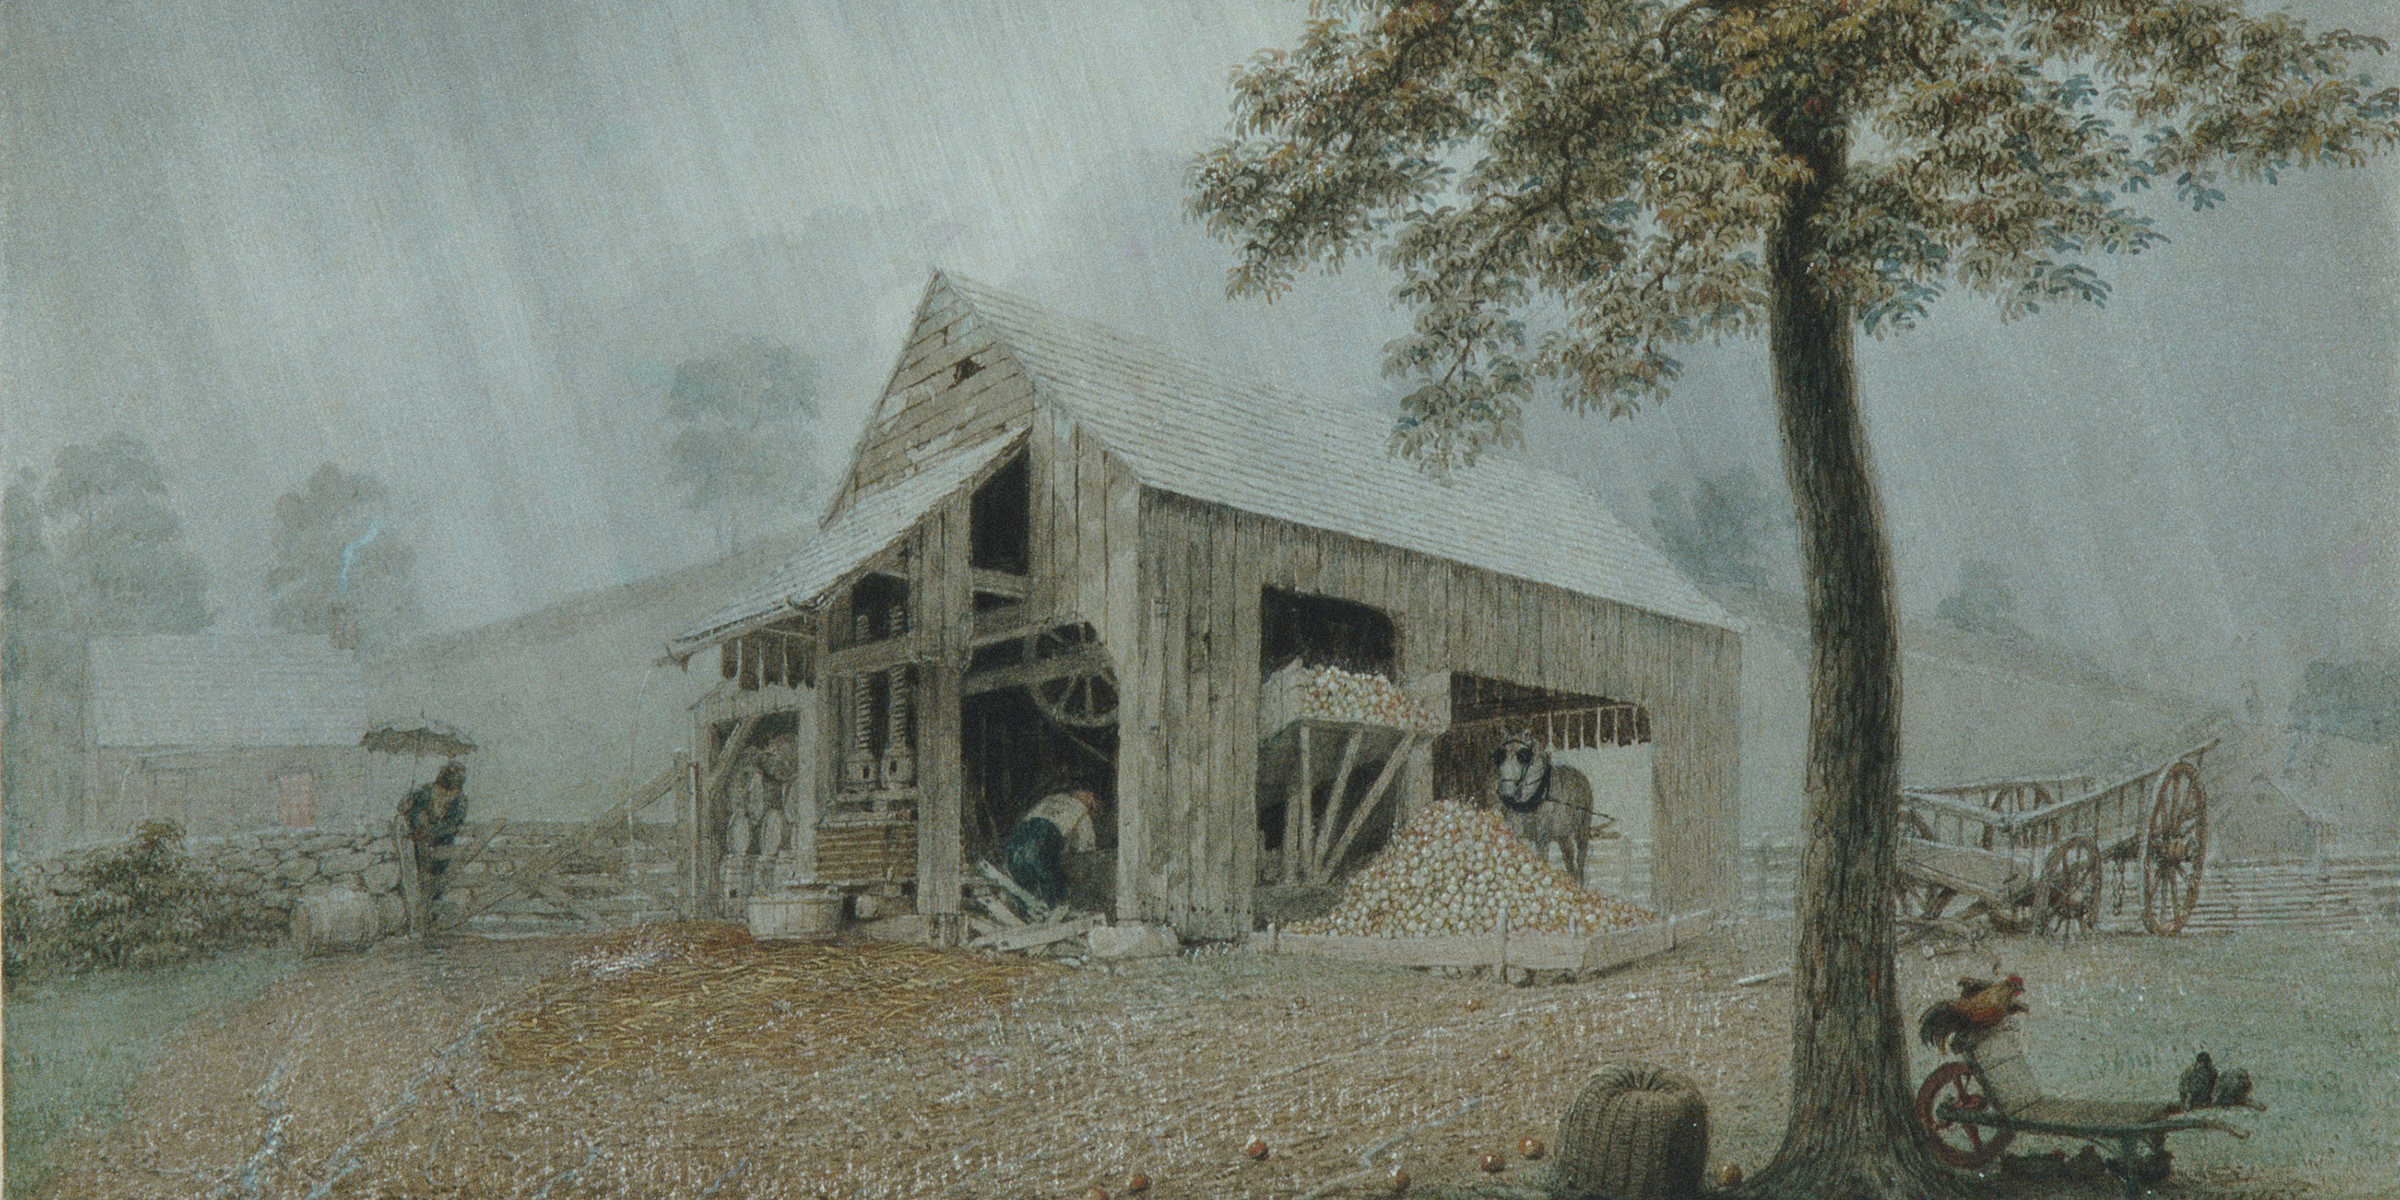 Rainstorm—Cider Mill at Redding, Connecticut, by George Harvey, c. 1840. The Metropolitan Museum of Art, Maria DeWitt Jesup Fund and Morris K. Jesup Funds, 1991.